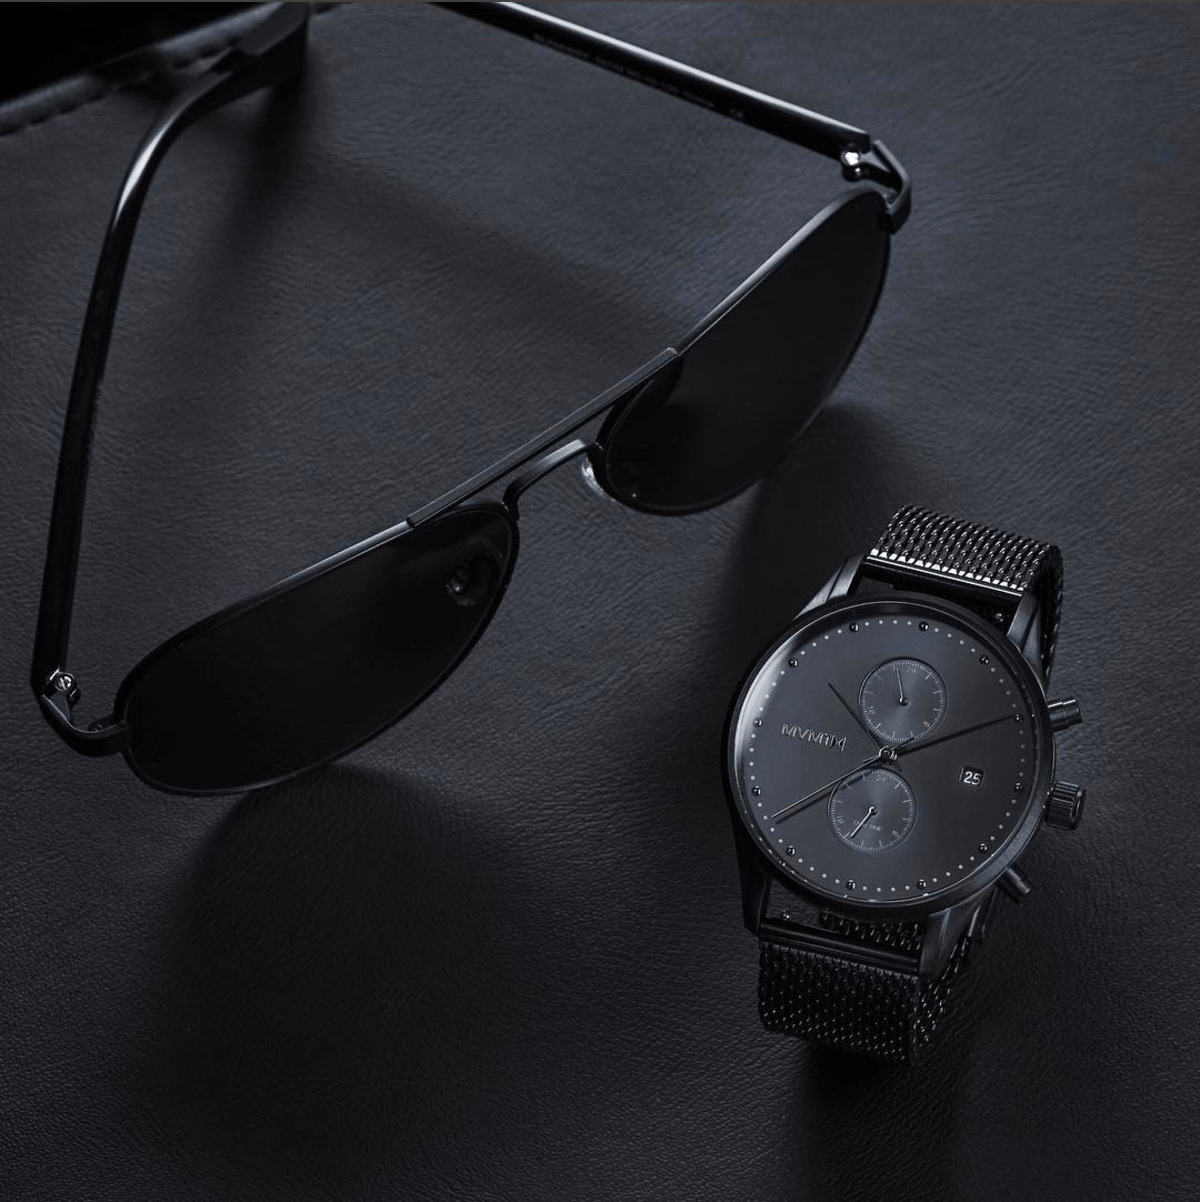 MVMT Runaways Sunglasses In Black And MVMT Slate Watch In Black